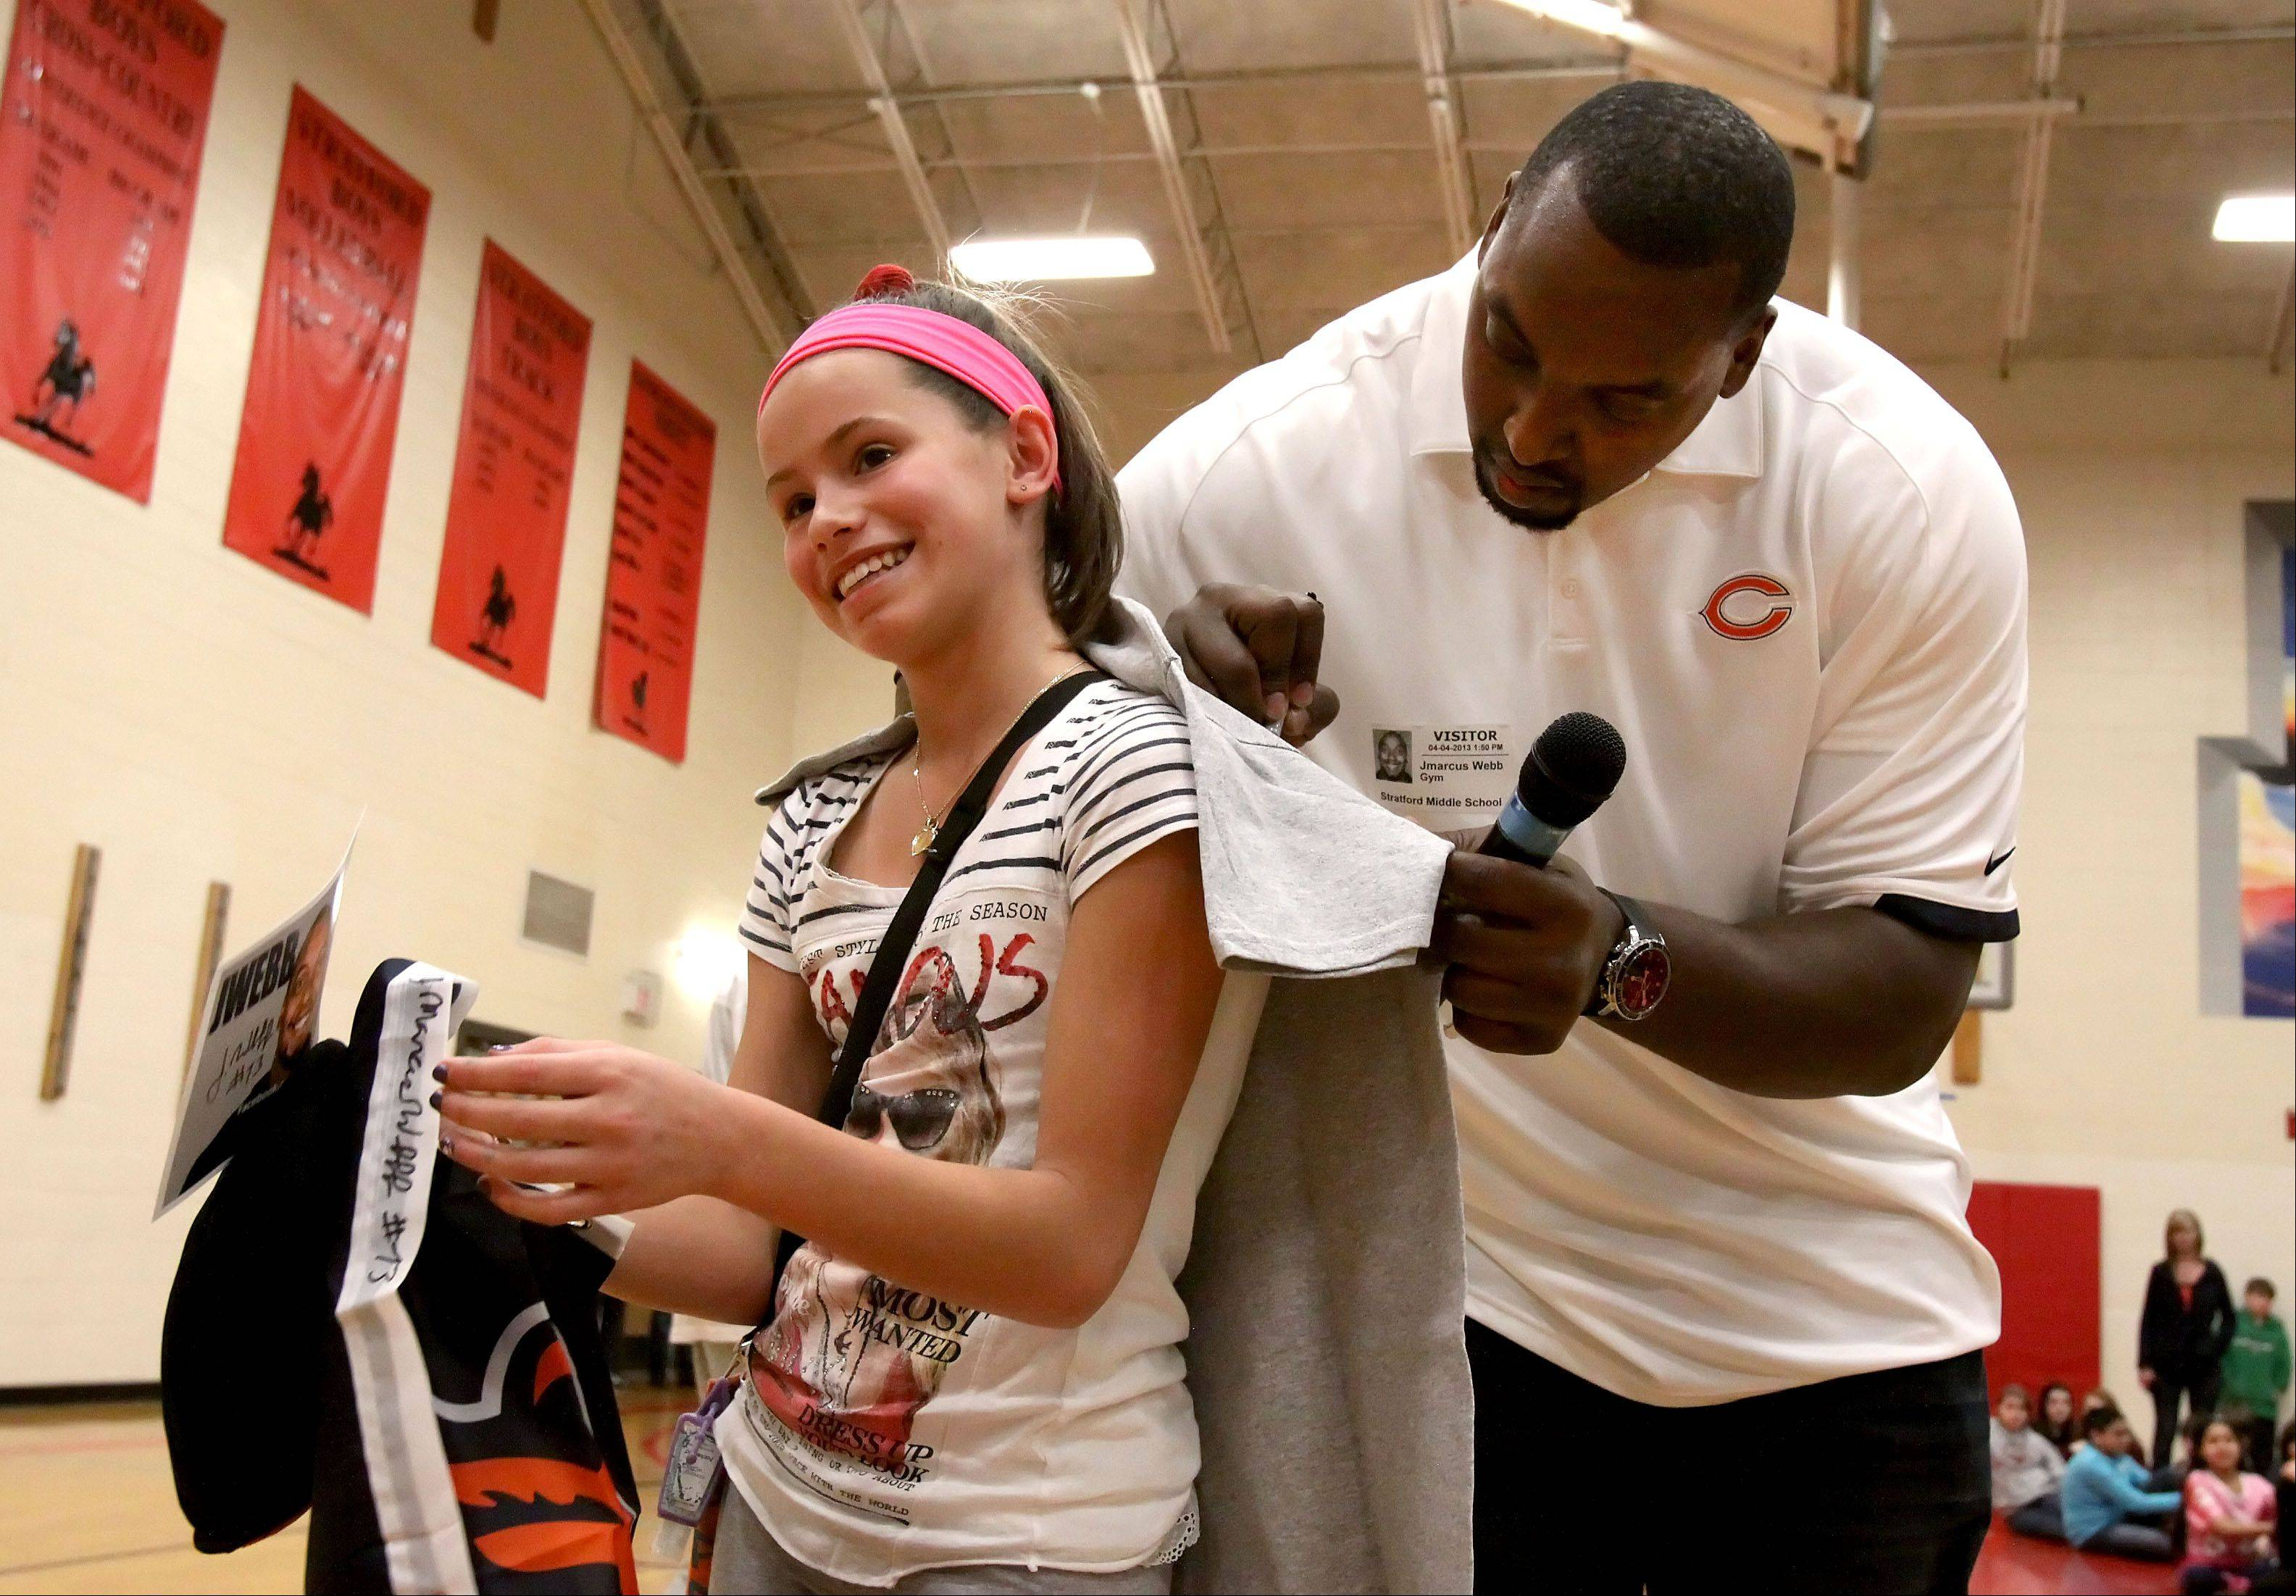 Giovanne Polina, 7th grade, gets an autograph from Chicago Bears offensive lineman J'Marcus Webb. She was the top fundraiser last year for Football for Heart. He appeared and talked about the importance of exercise and physical activity at Stratford Middle School in Bloomingdale Thursday.